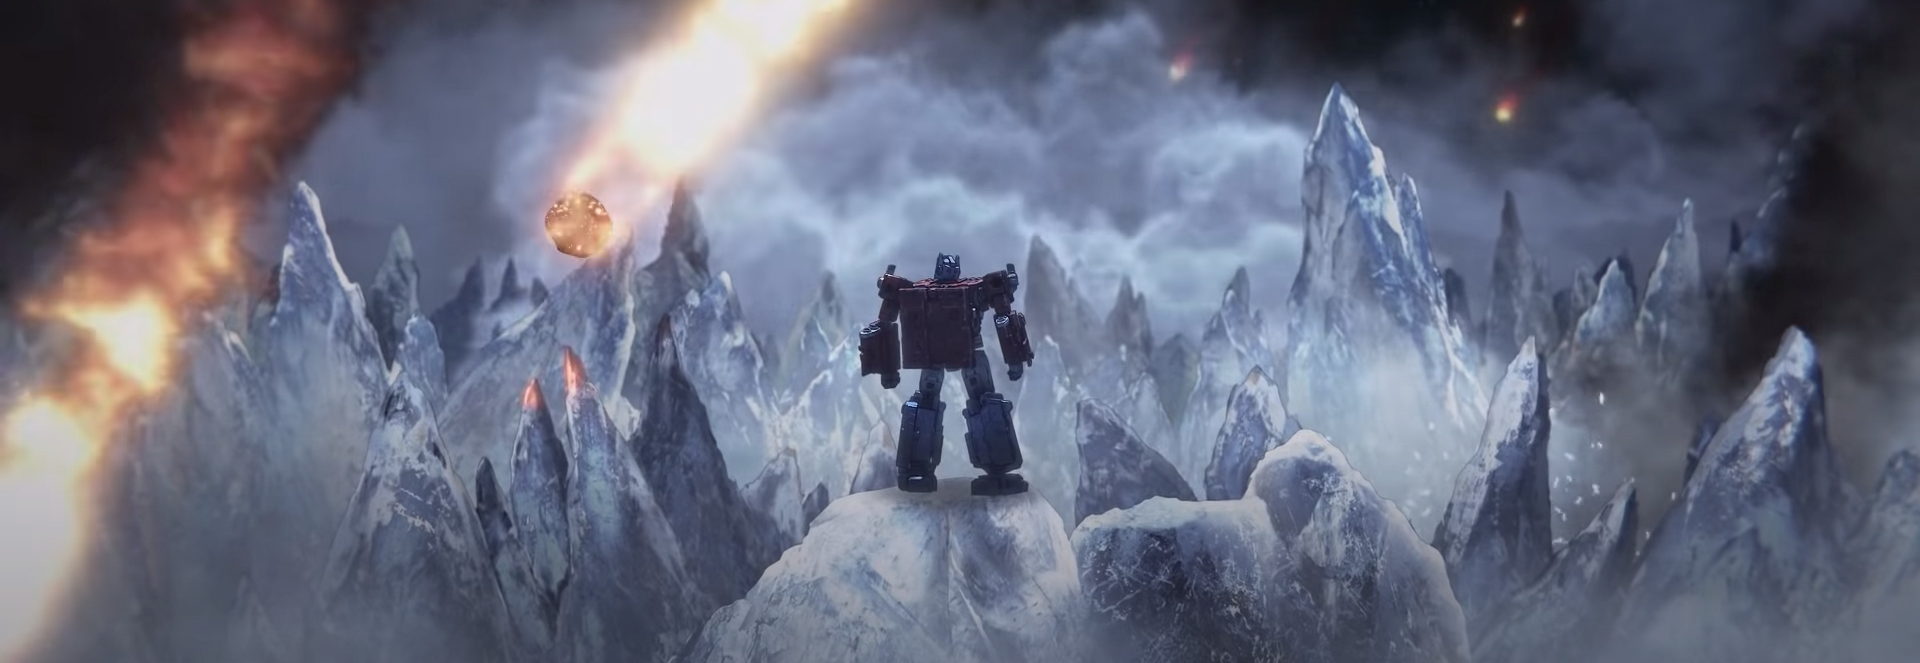 Transformers: War For Cybertron Trilogy – Earthrise. Image Credit: Netflix.